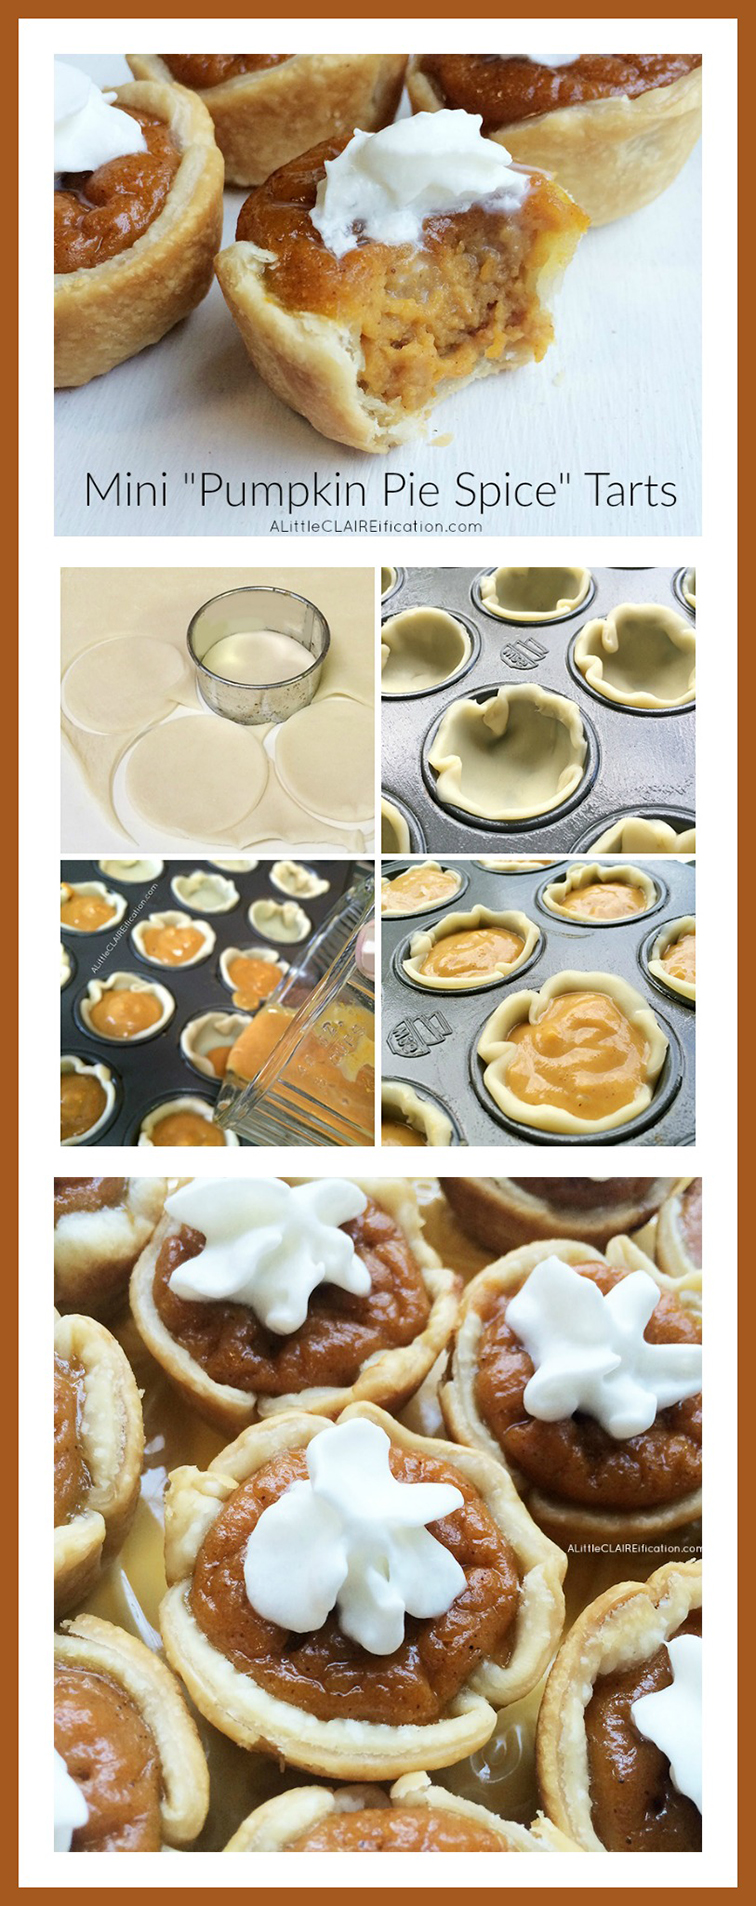 Mini Pumpkin Pie Spice Tarts  - The easiest little tarts you'll ever make.  Blend, pour, bake.